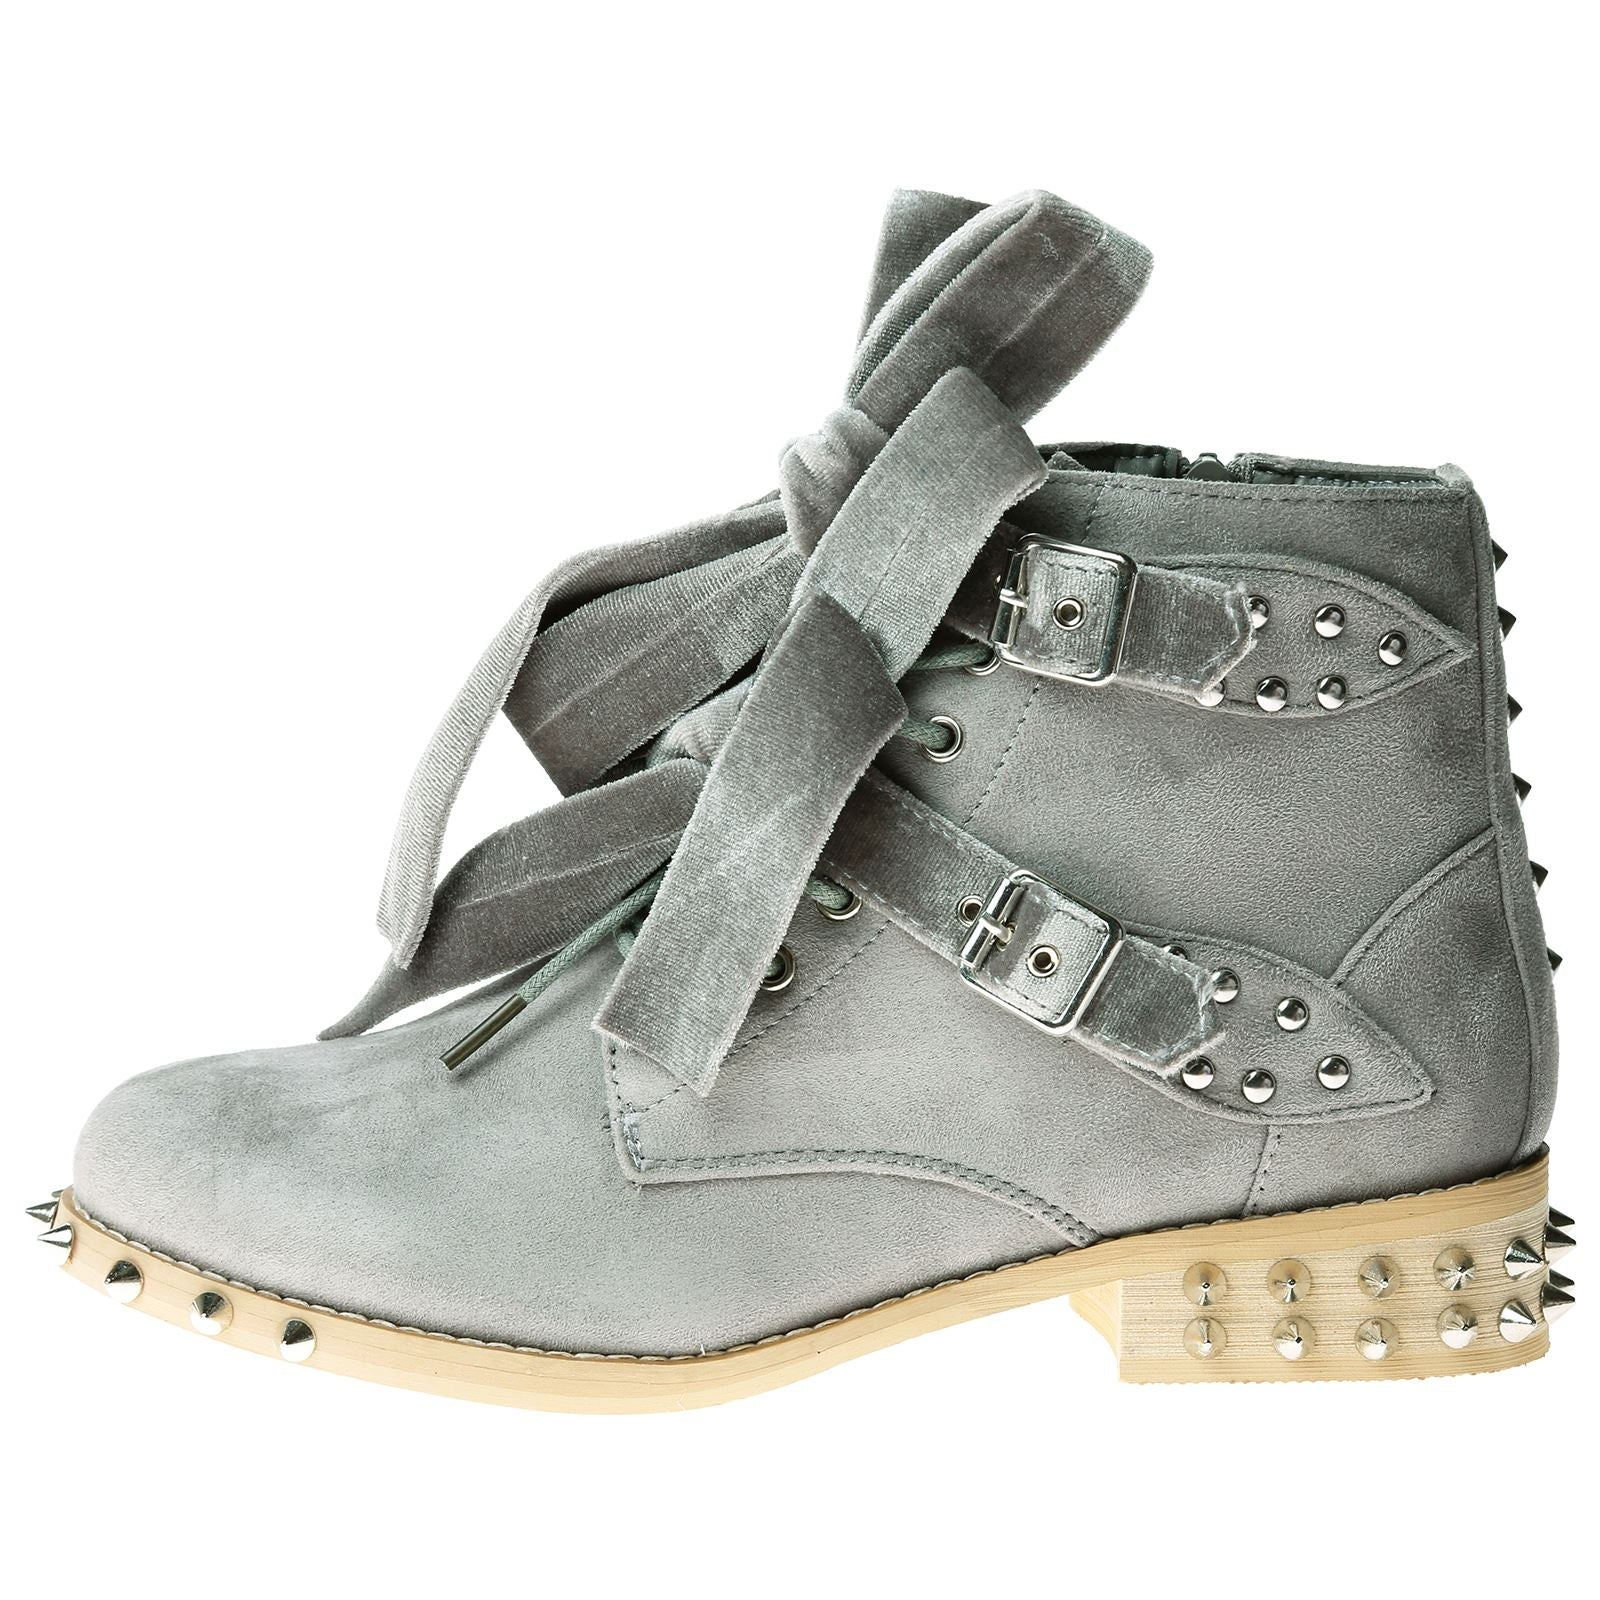 Heather Studded Biker Ankle Boots in Grey Faux Suede